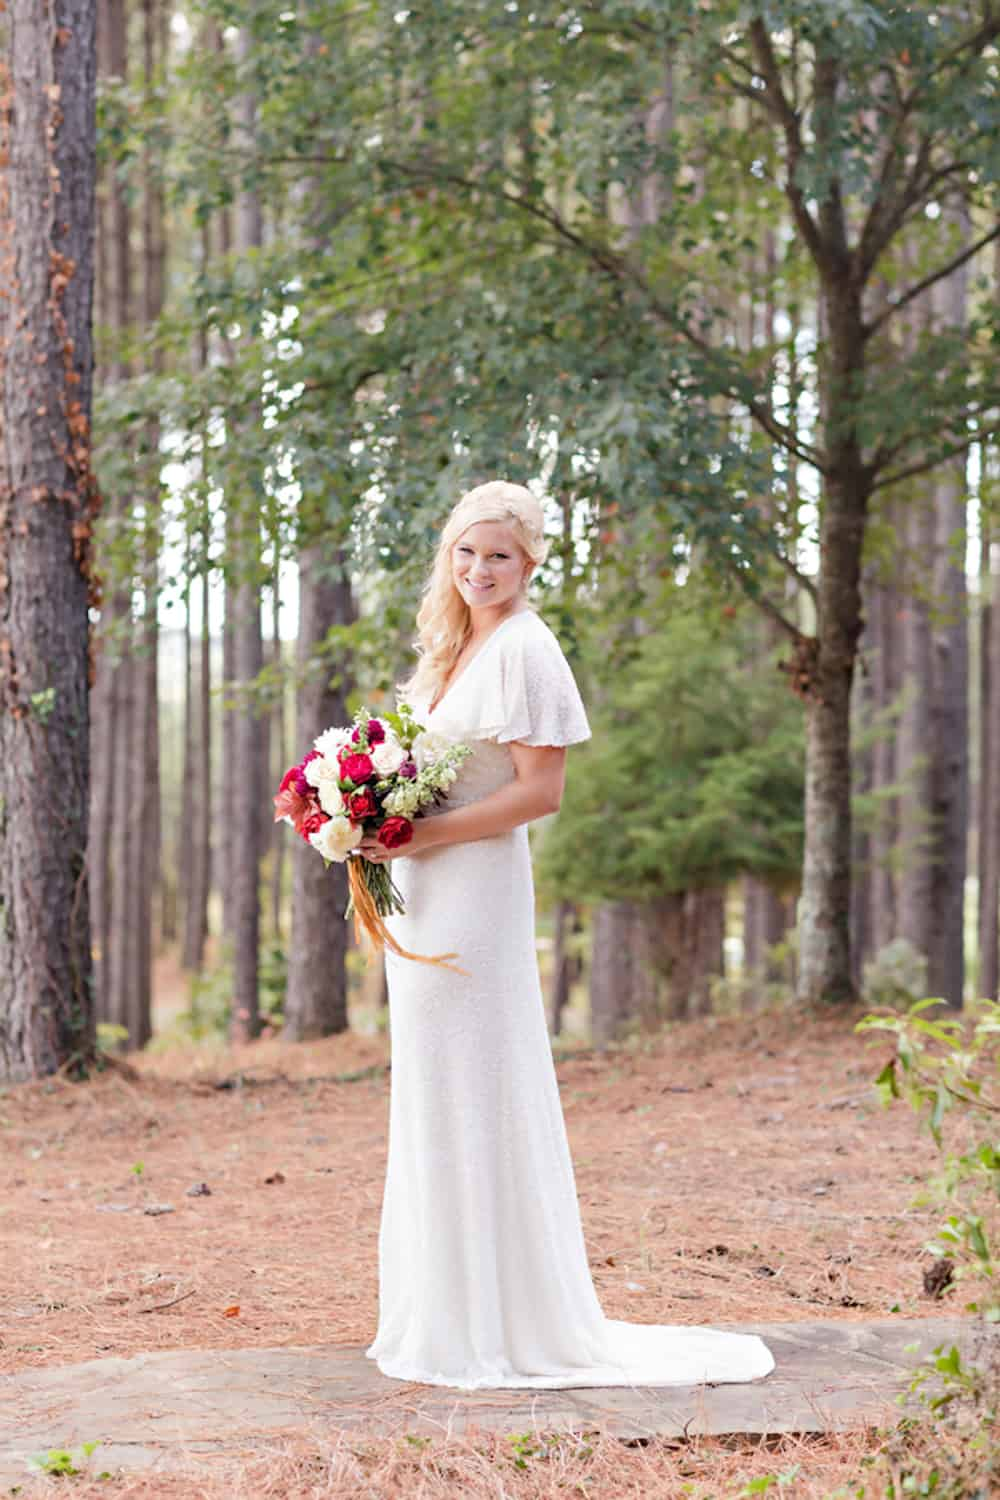 5 Gaddy_Names_JenniferStuartPhotography_SarahLukeWEDDING141_low